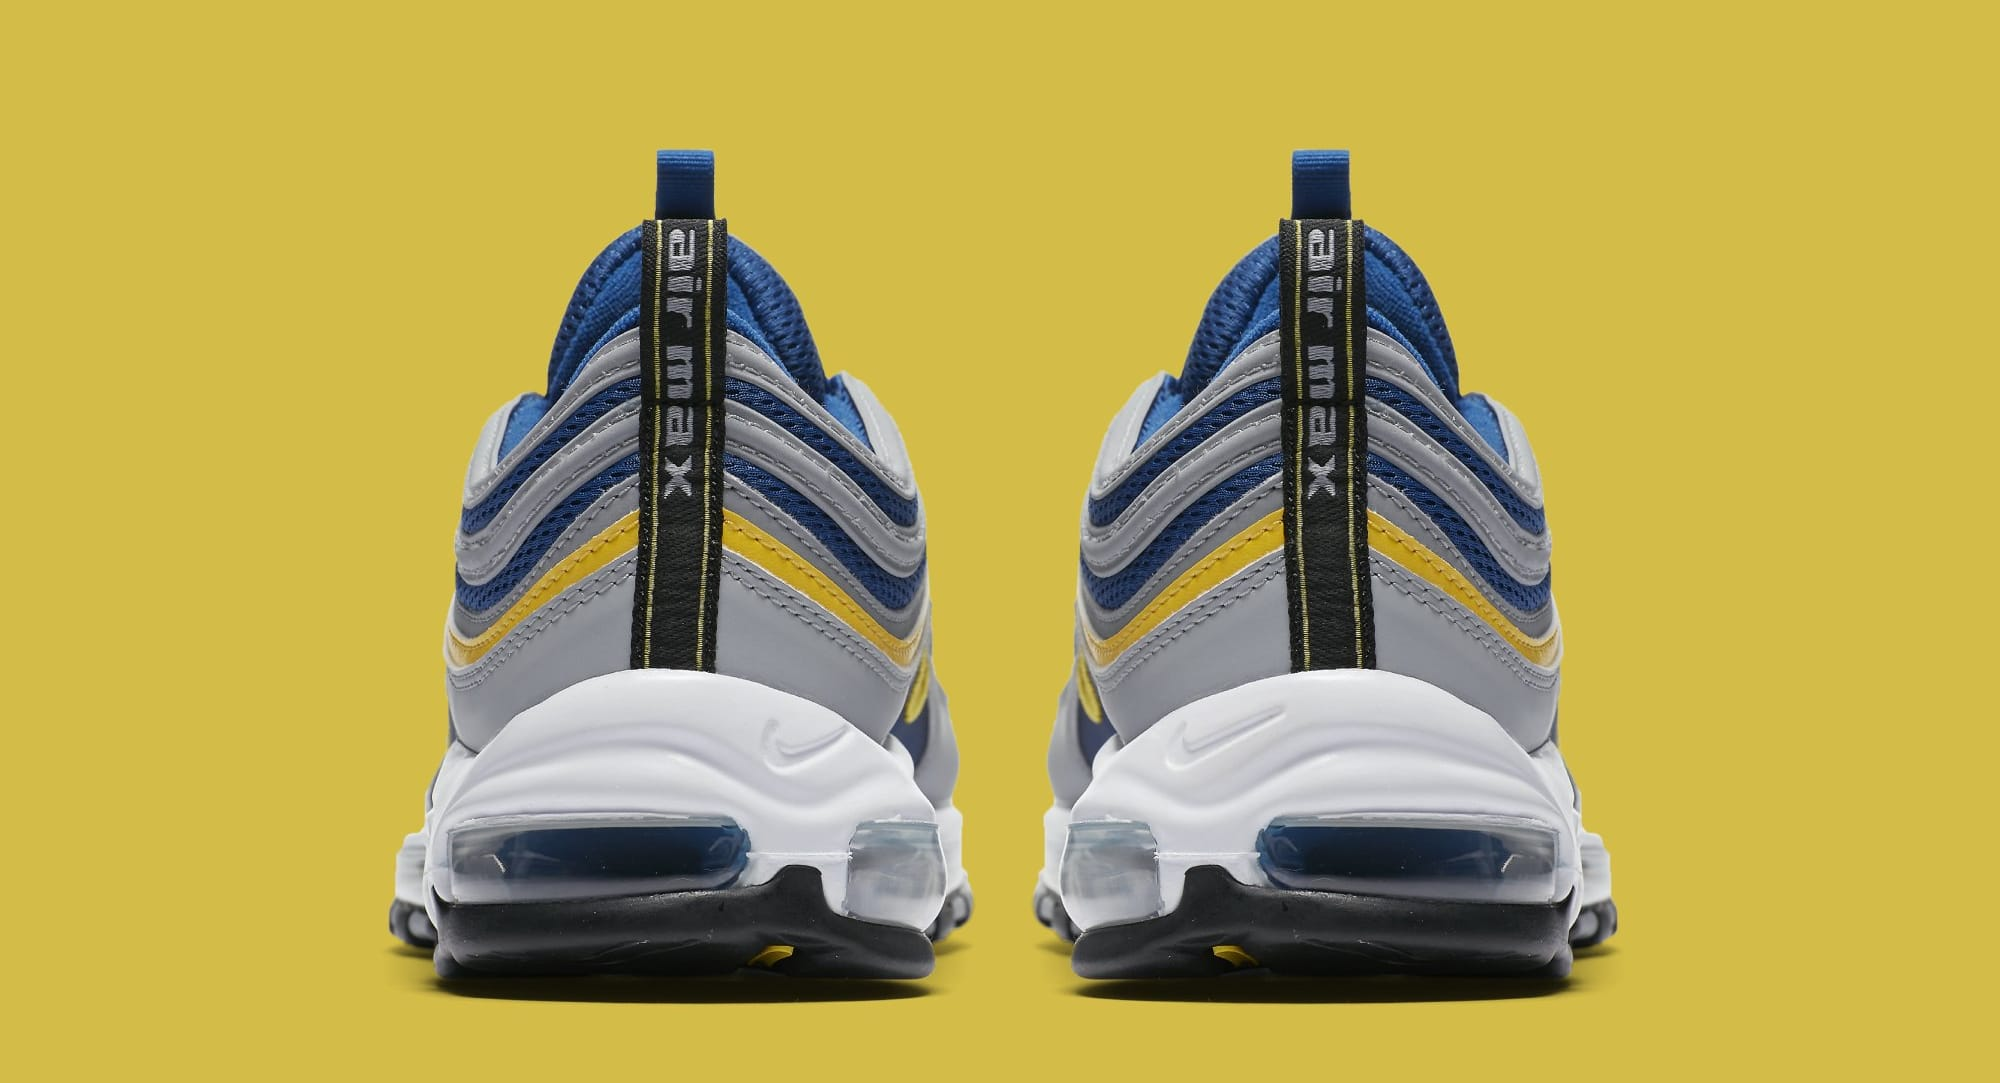 Nike Air Max 97 'Wolf Grey/Tour Yellow/Gym Blue' 921826-006 (Heel)